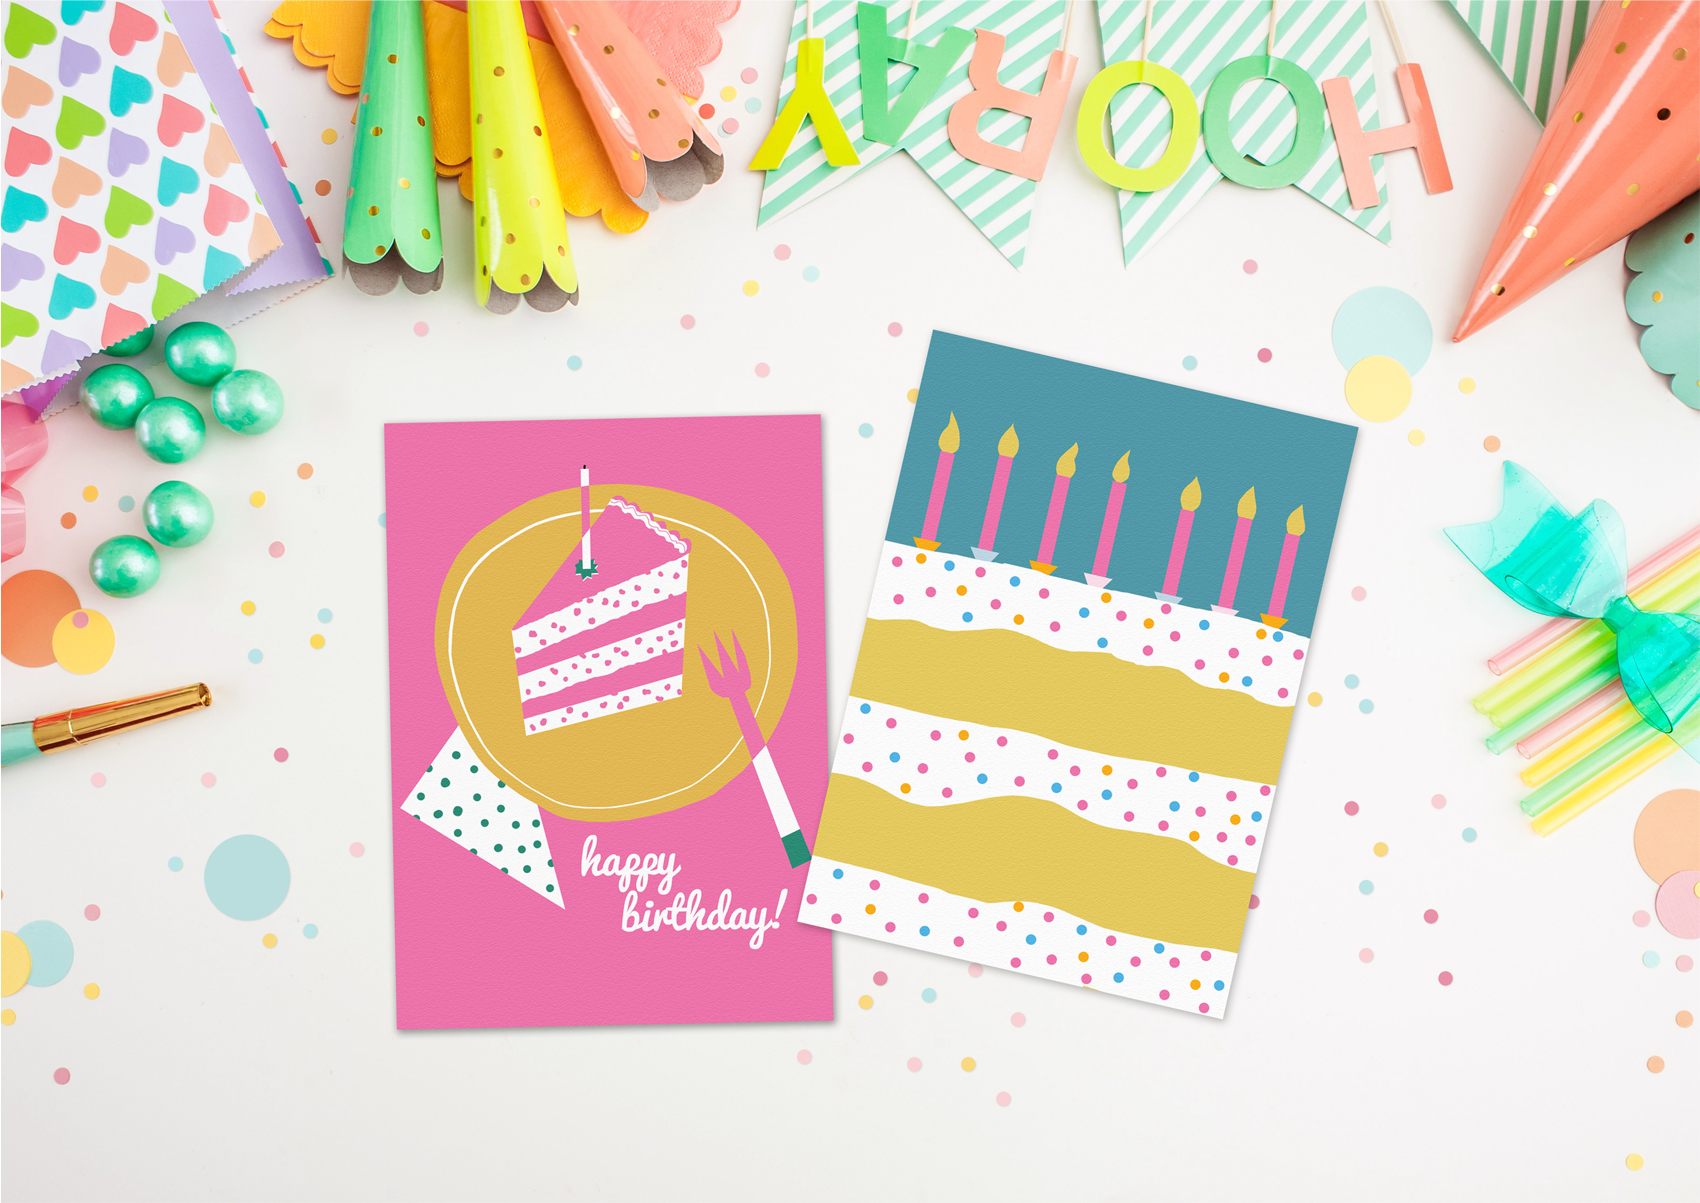 RSP-greeting cards